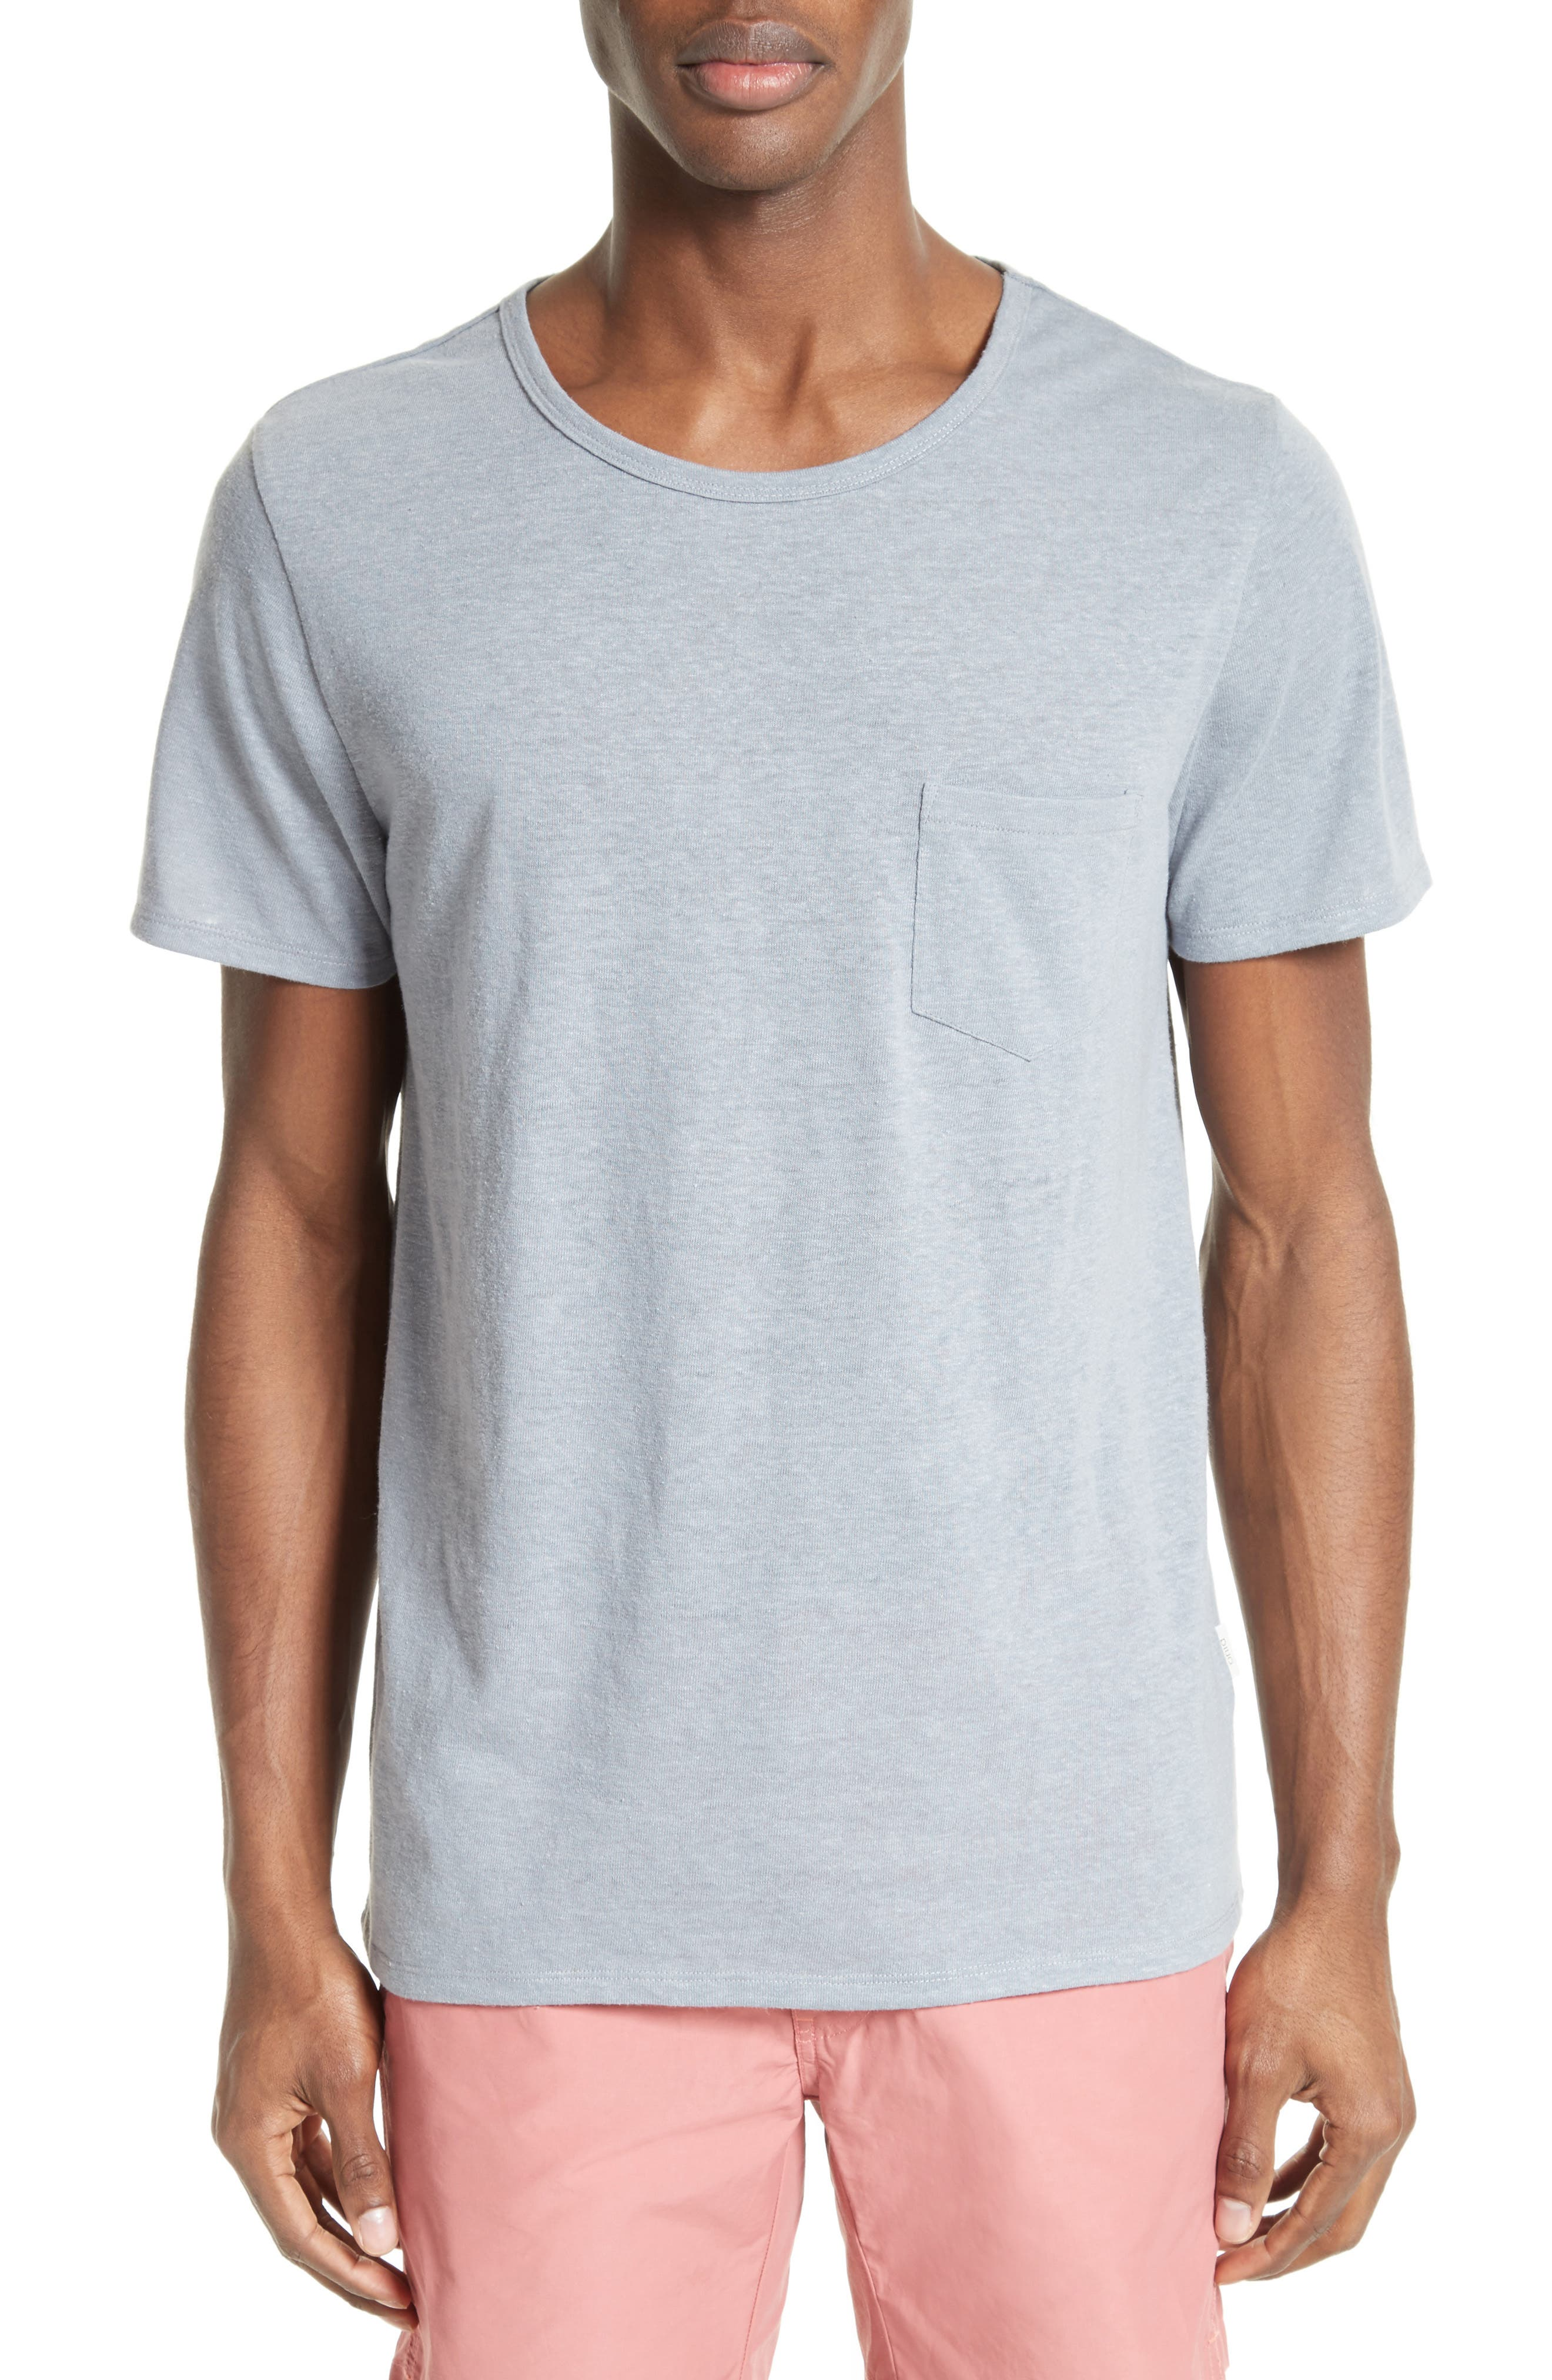 Alternate Image 1 Selected - ONIA Chad Linen Blend Pocket T-Shirt